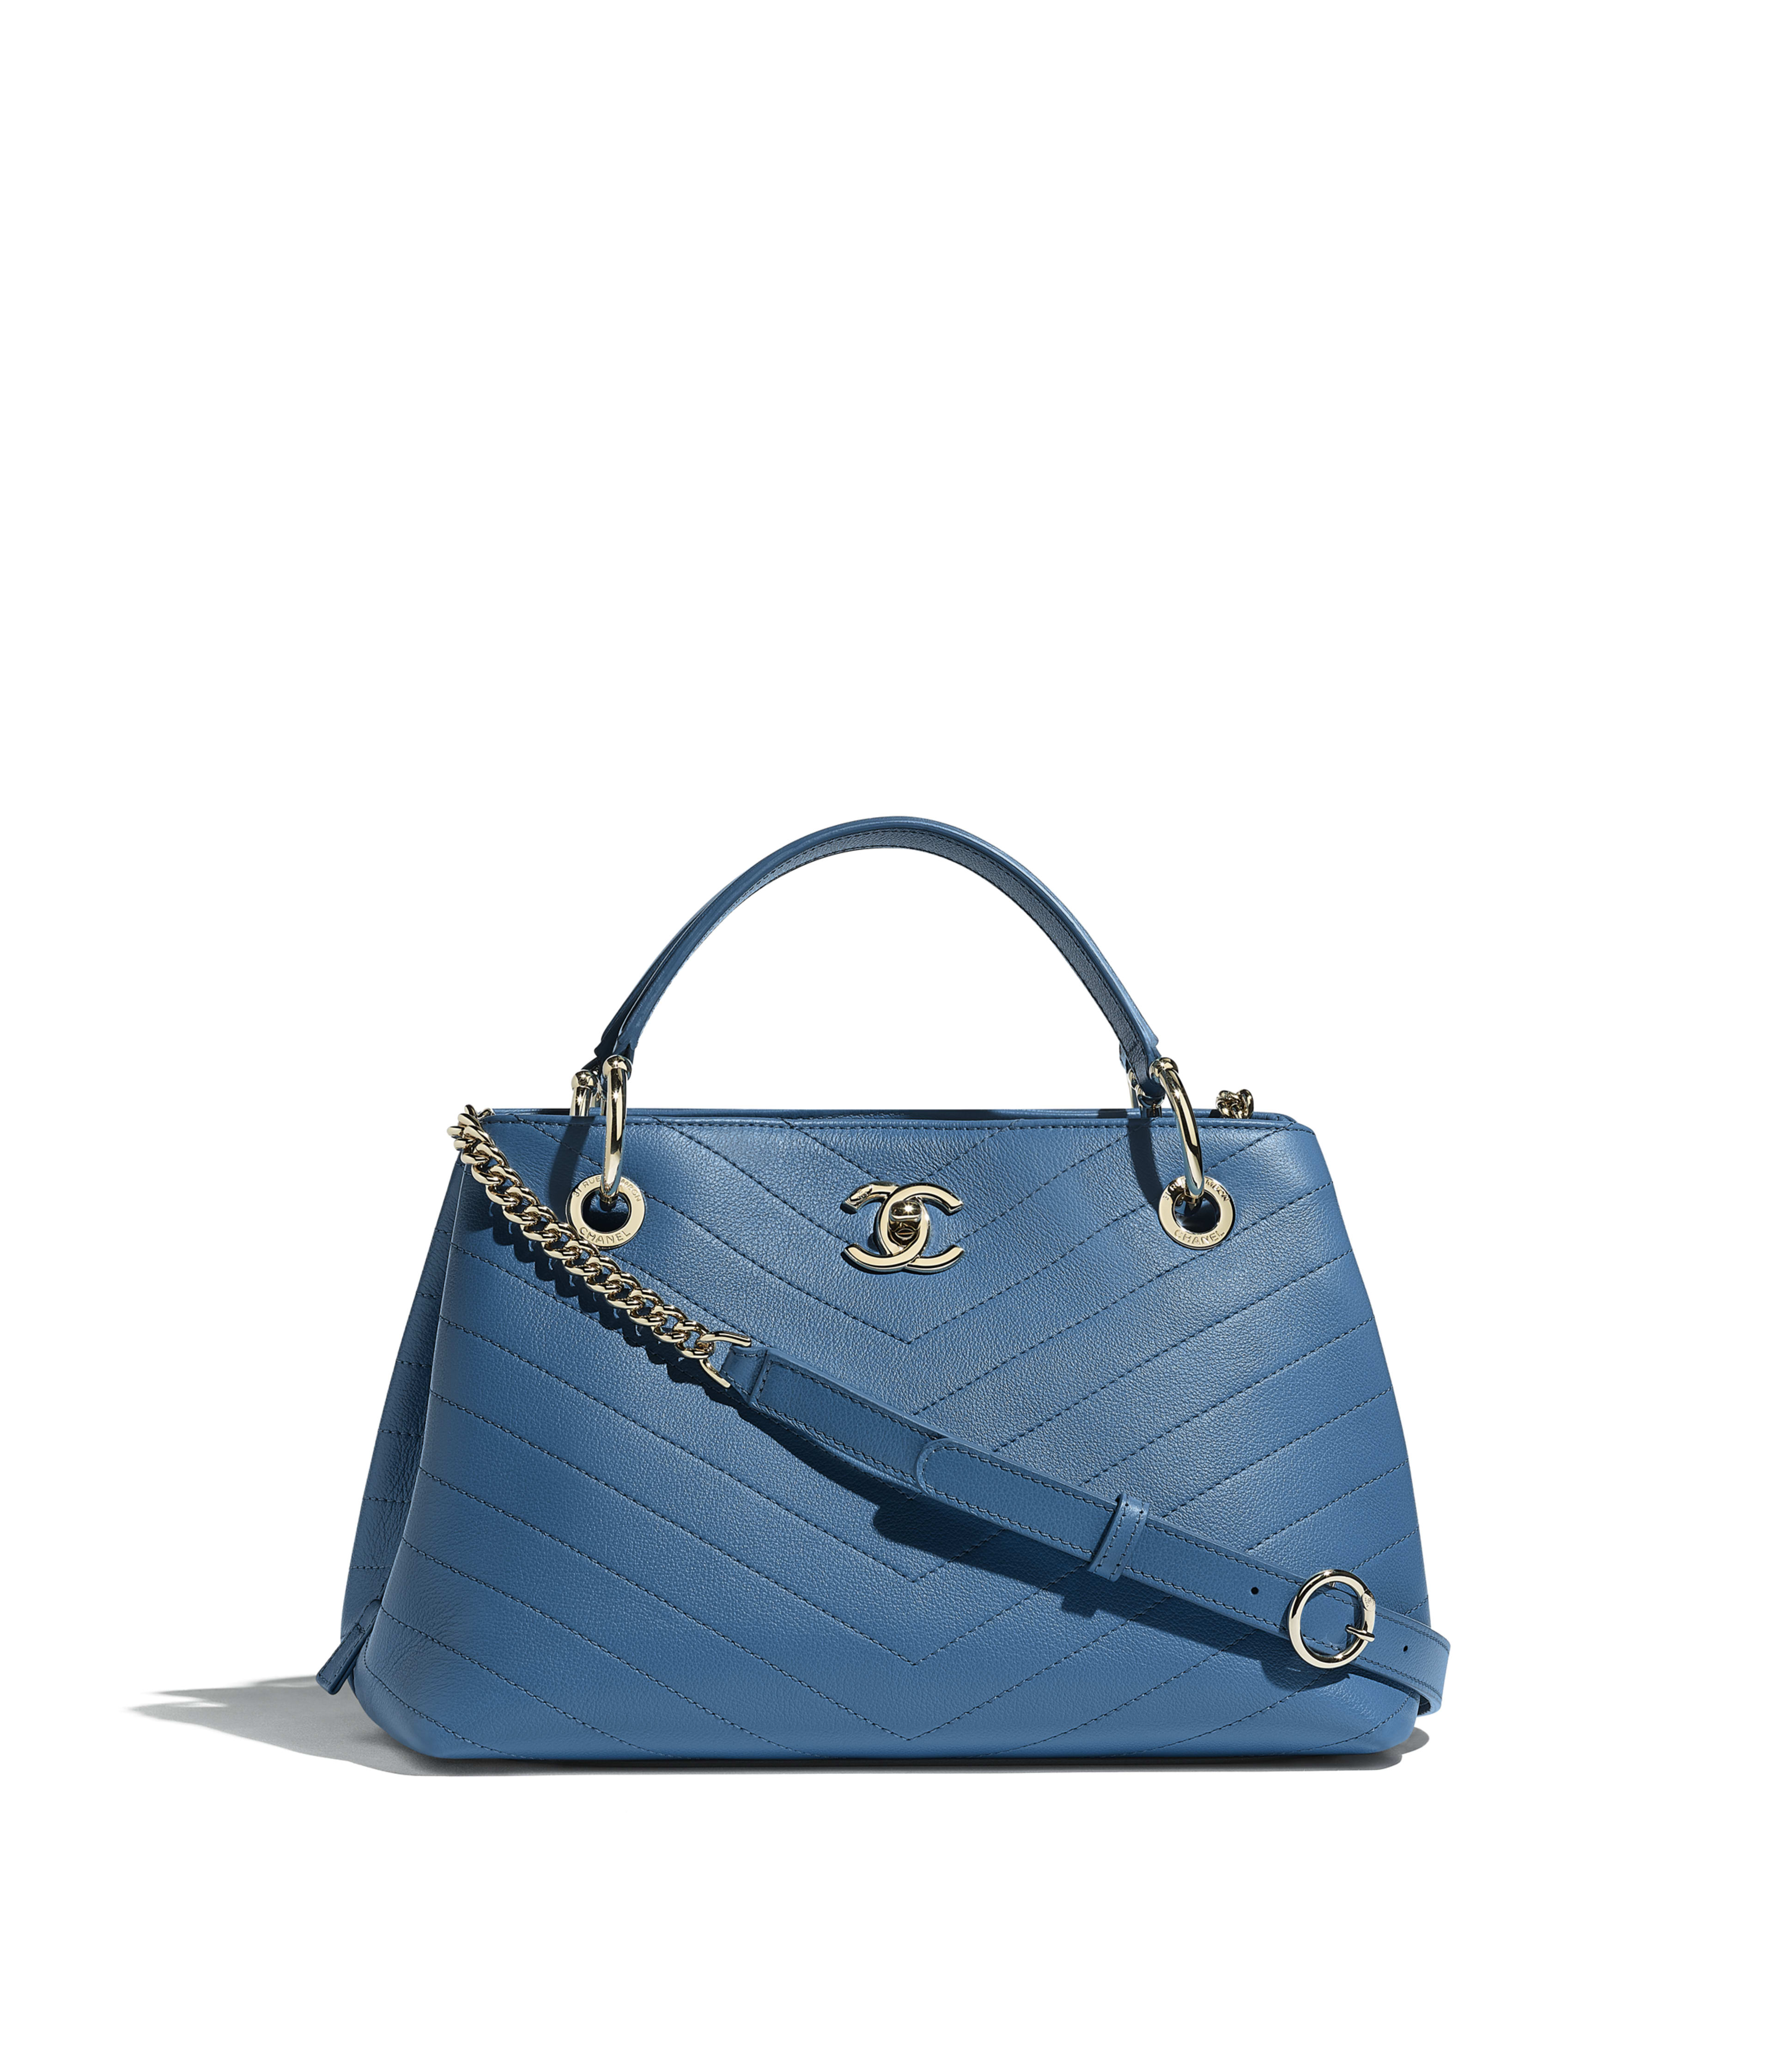 034c636d7d3 Small Zipped Shopping Bag Grained Calfskin & Gold-Tone Metal, Blue Ref.  A57150Y83381N0902